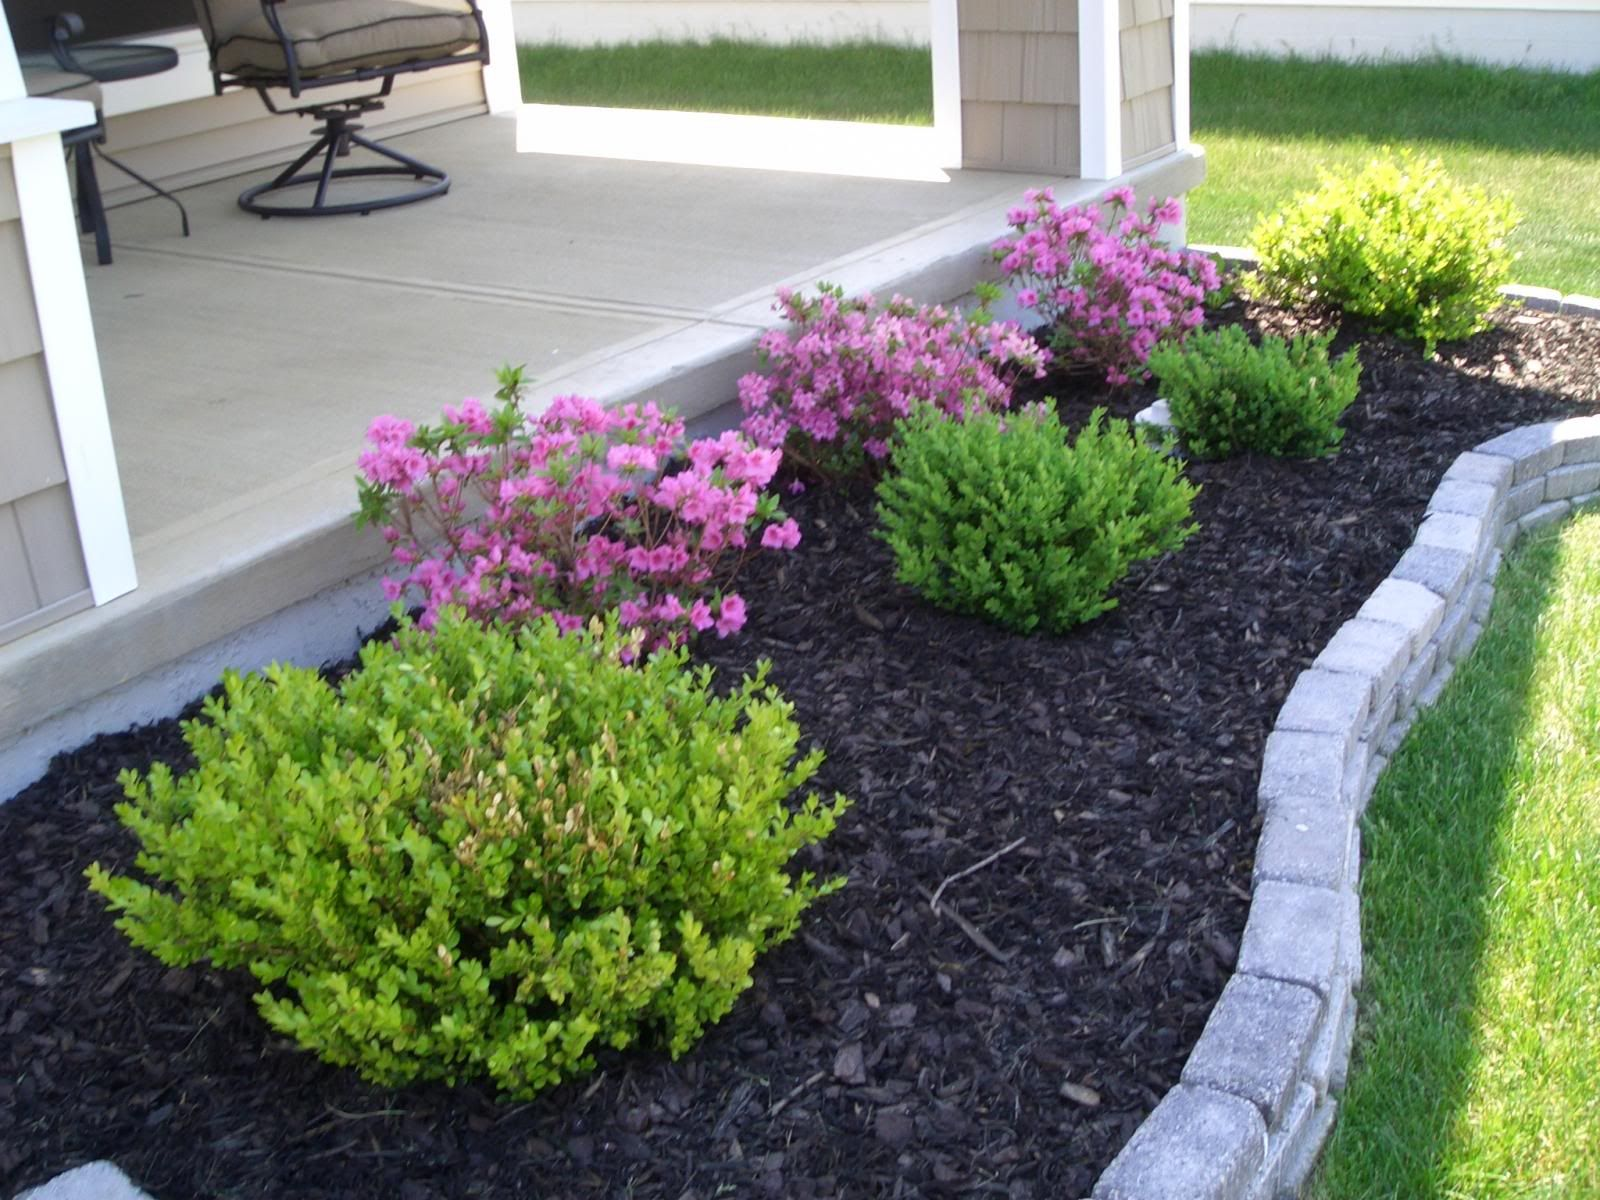 Genial Cheap And Easy Landscaping Ideas   Bing Images Raised Flower Bed At Porch